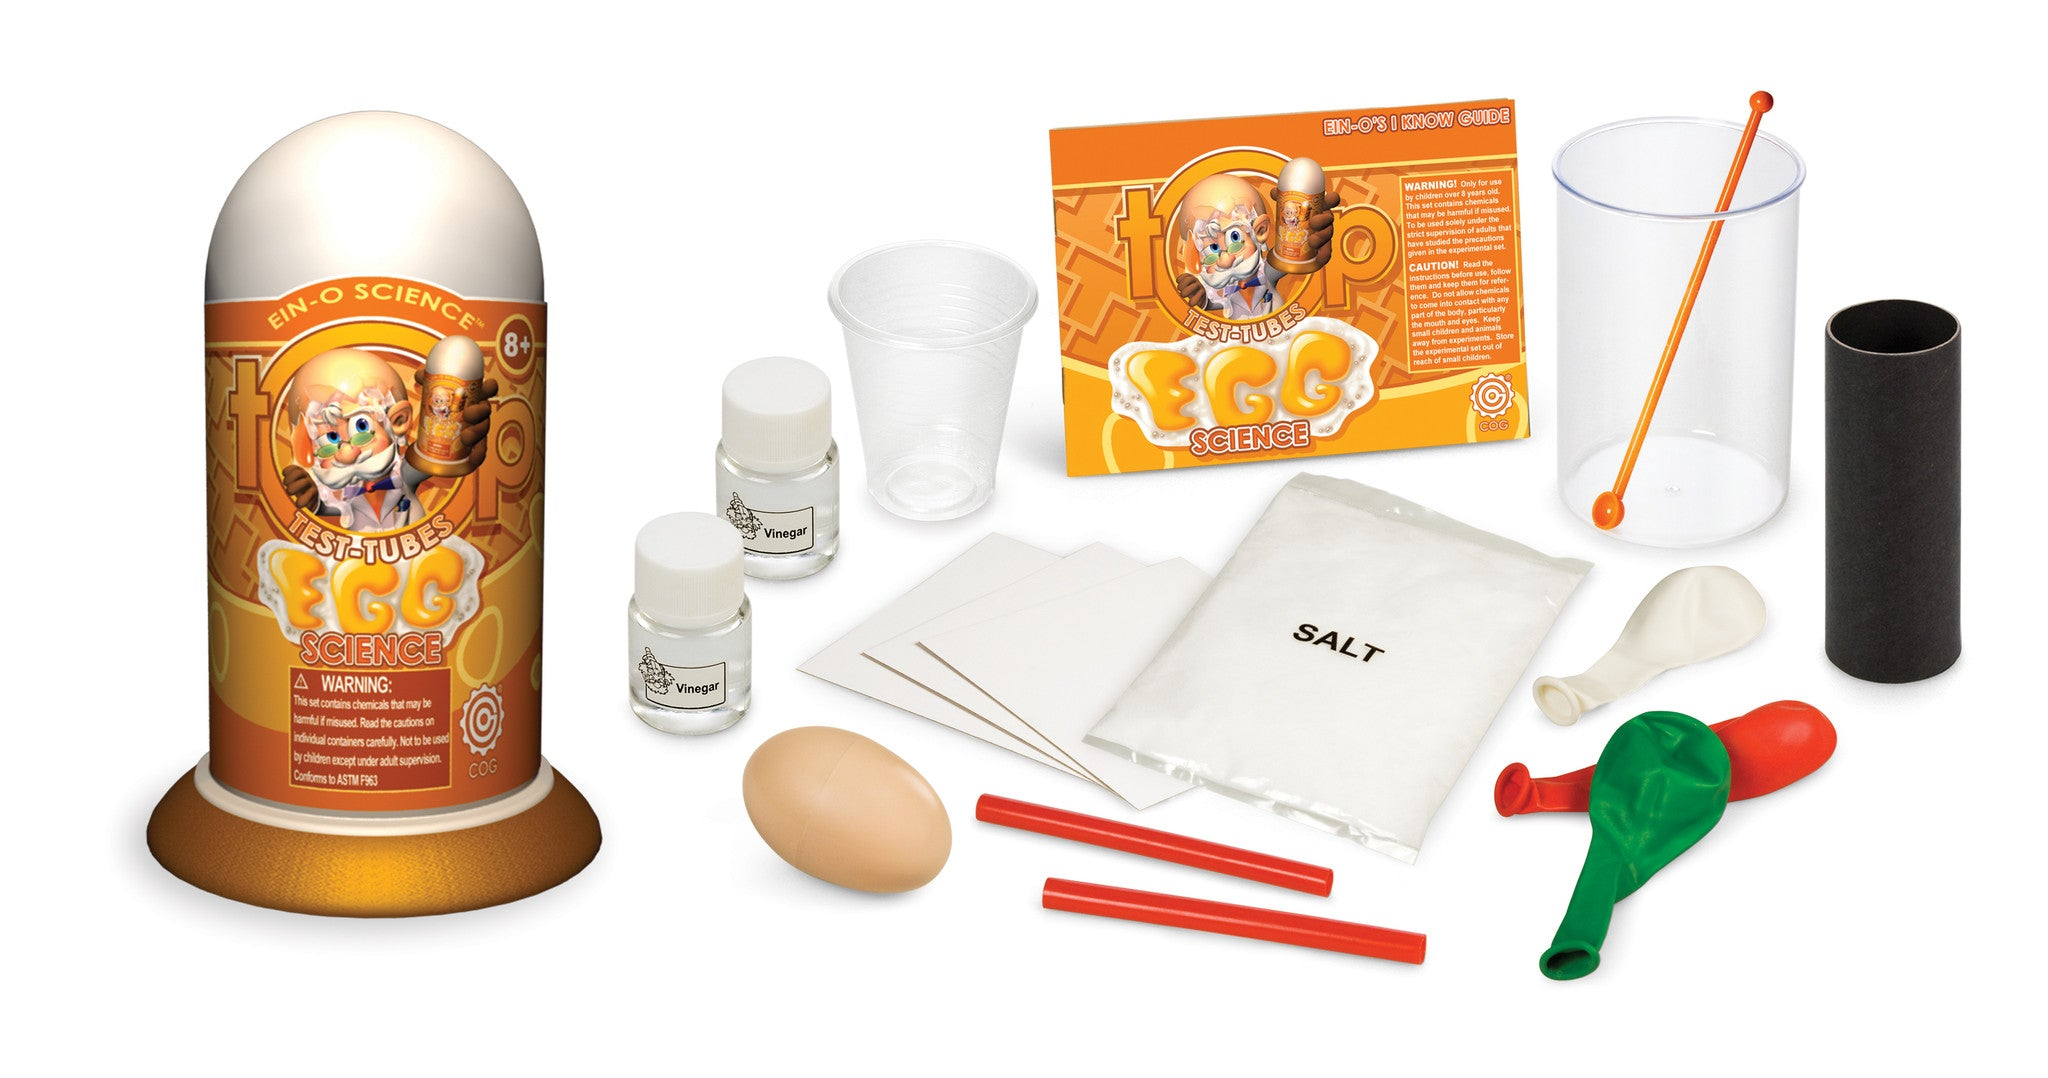 Egg Science - The Science Shop